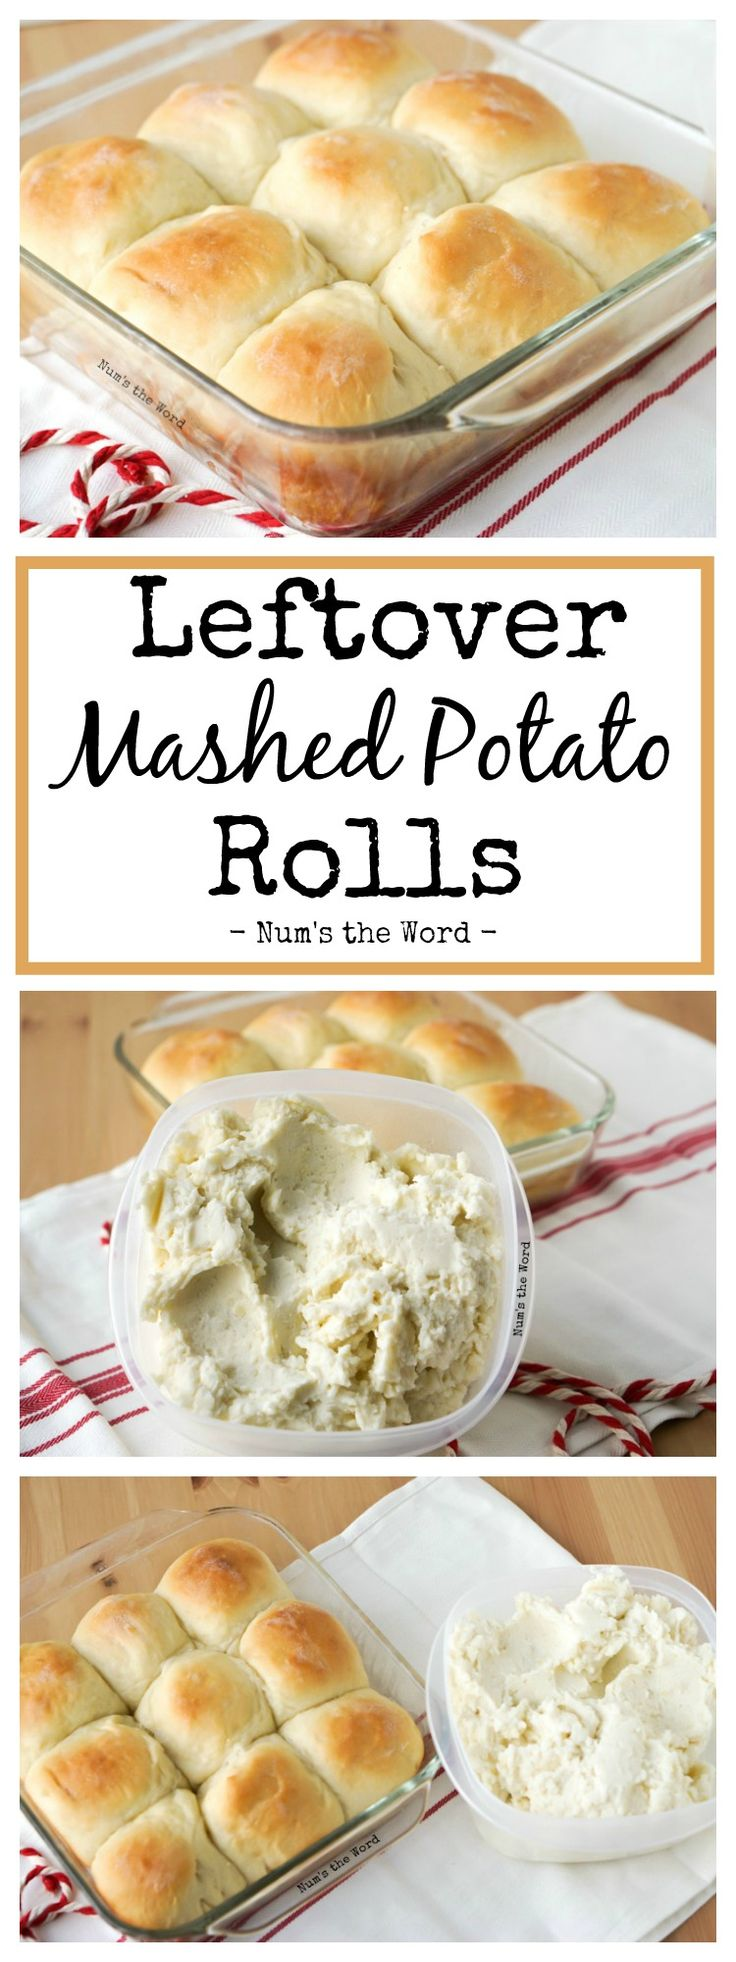 Leftover Mashed Potato Rolls are a sweet and delicious way to use up any flavor of leftover mashed potatoes. Our #1 favorite way to use up leftovers!